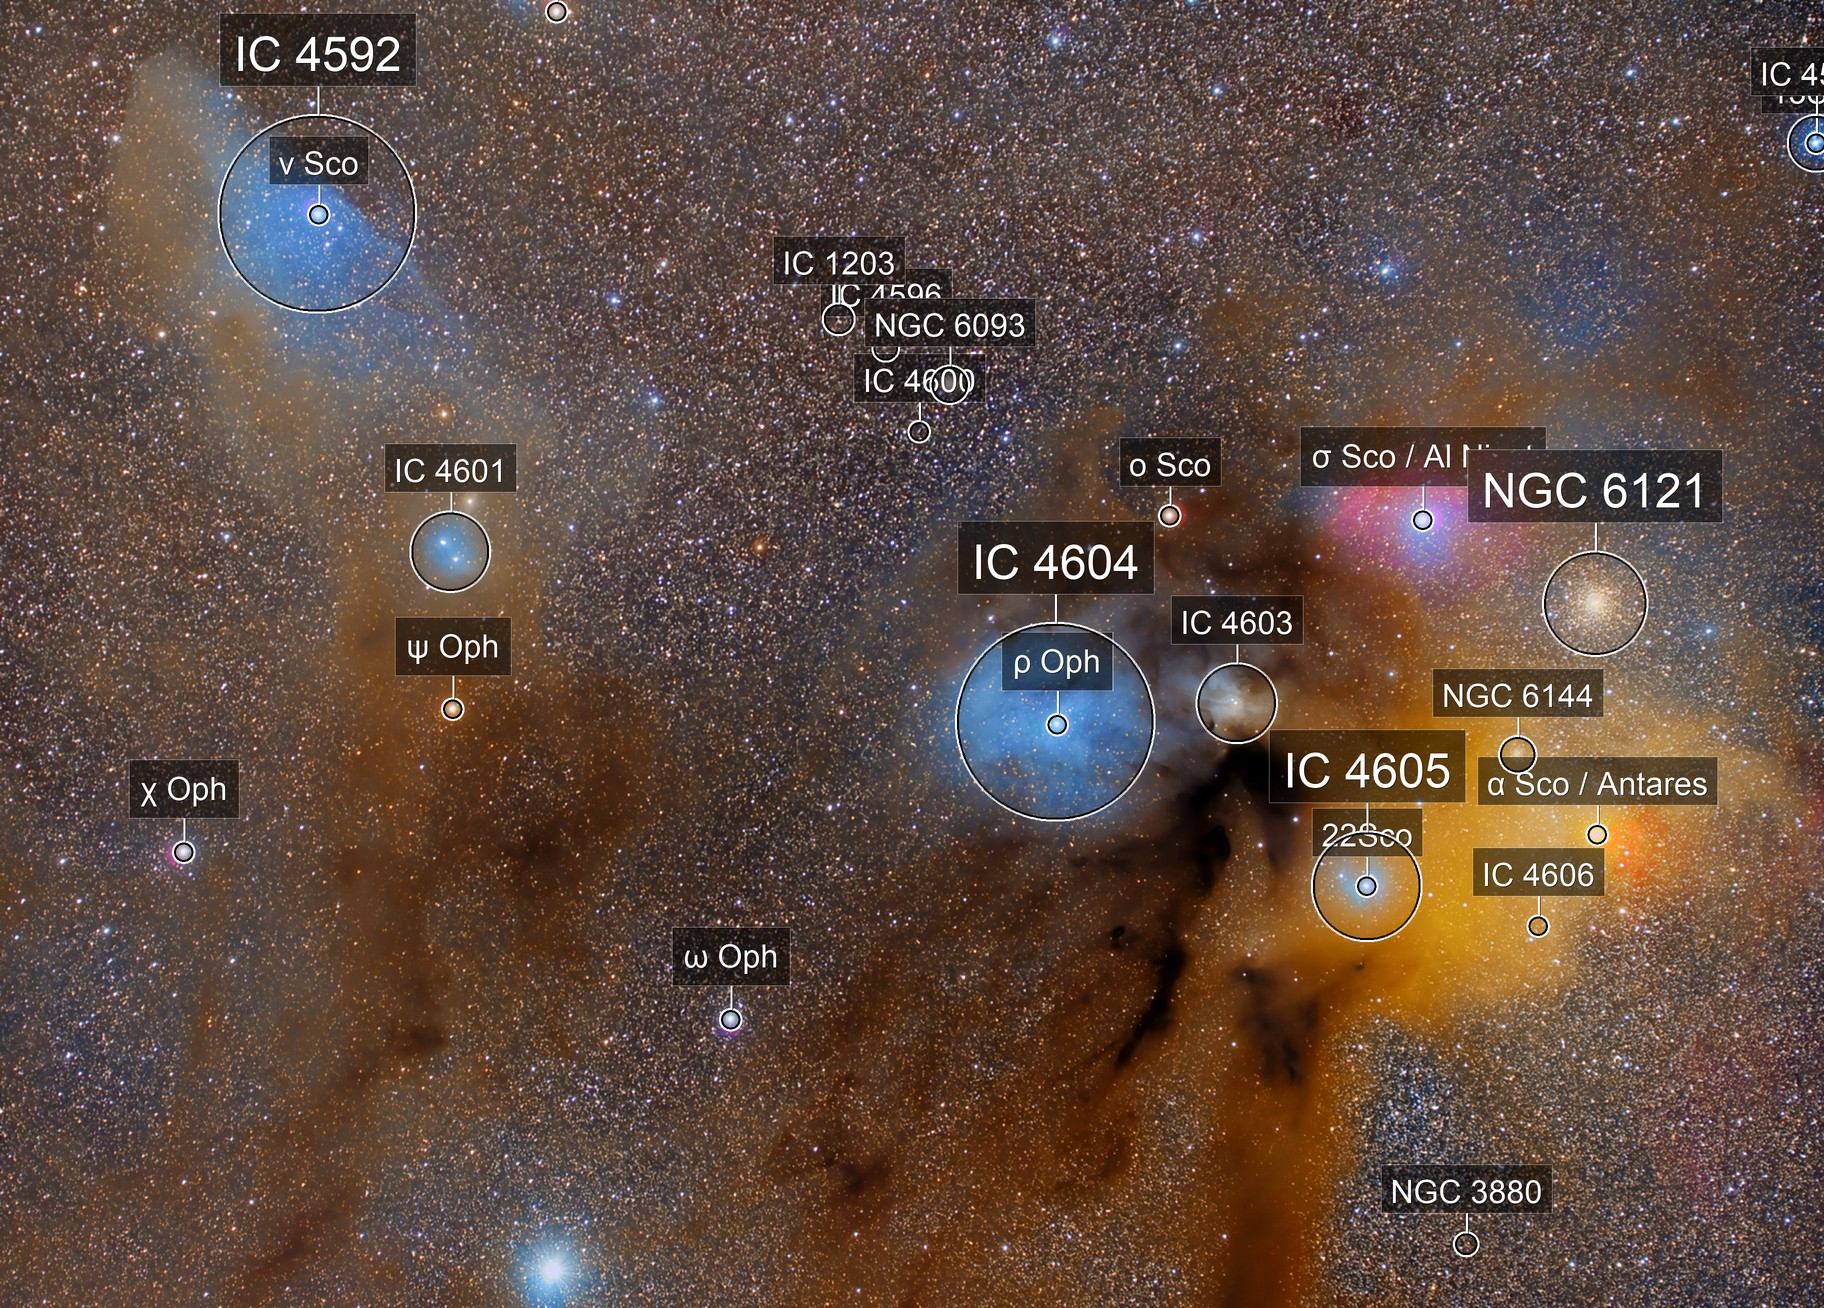 RHO OPHIUCUS AND THE BLUE HORSE HEAD REGION